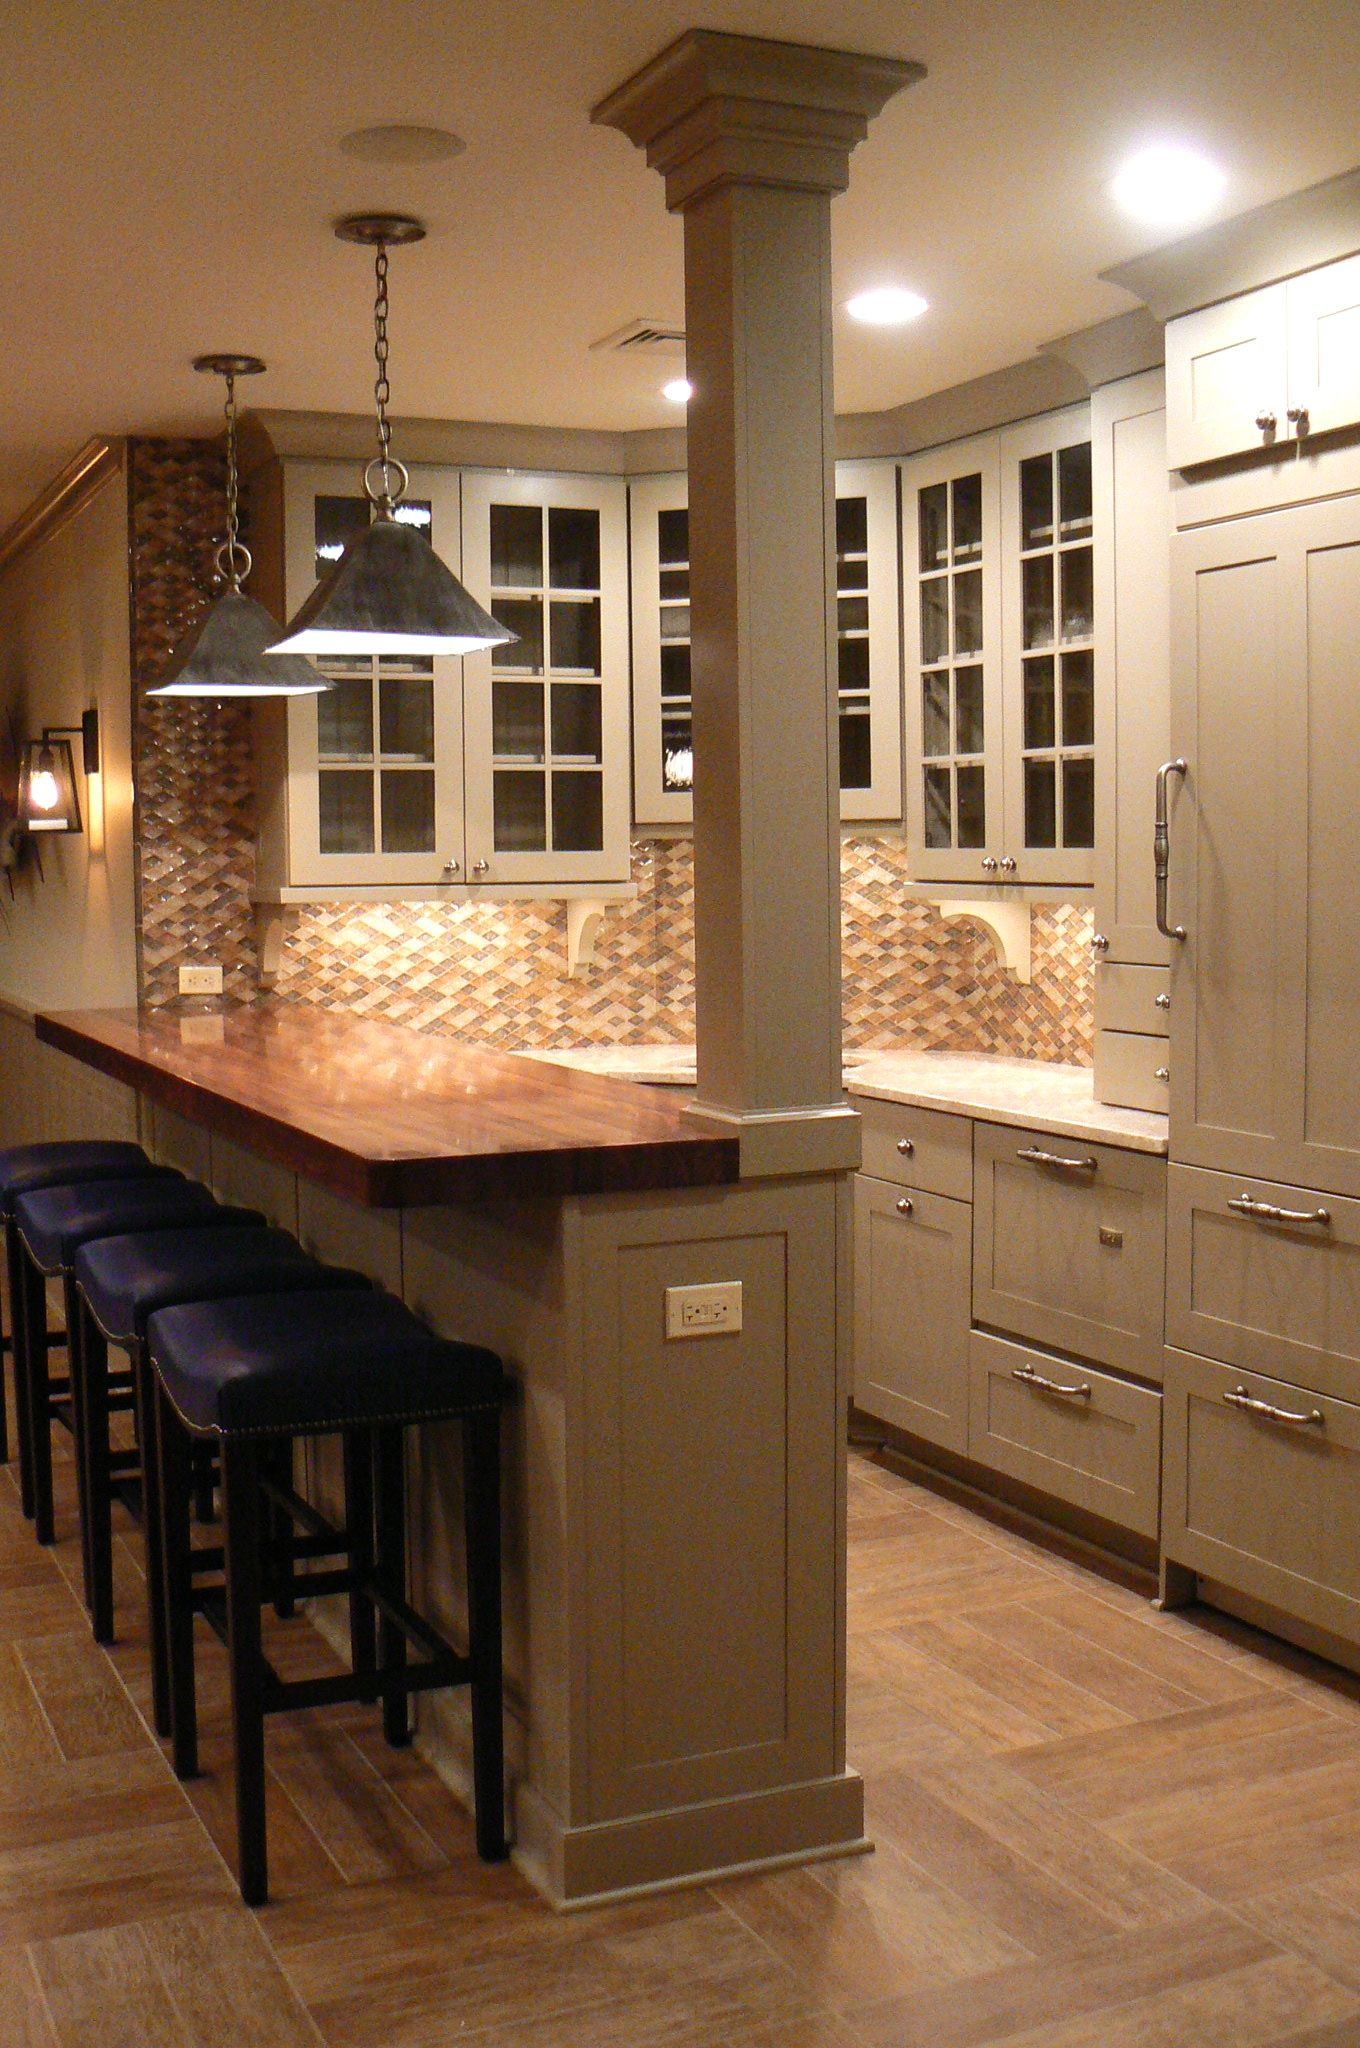 Like The Wood Bar Top And Colour Of Cabinets Also Floor Is That Hardwood Or Tile More